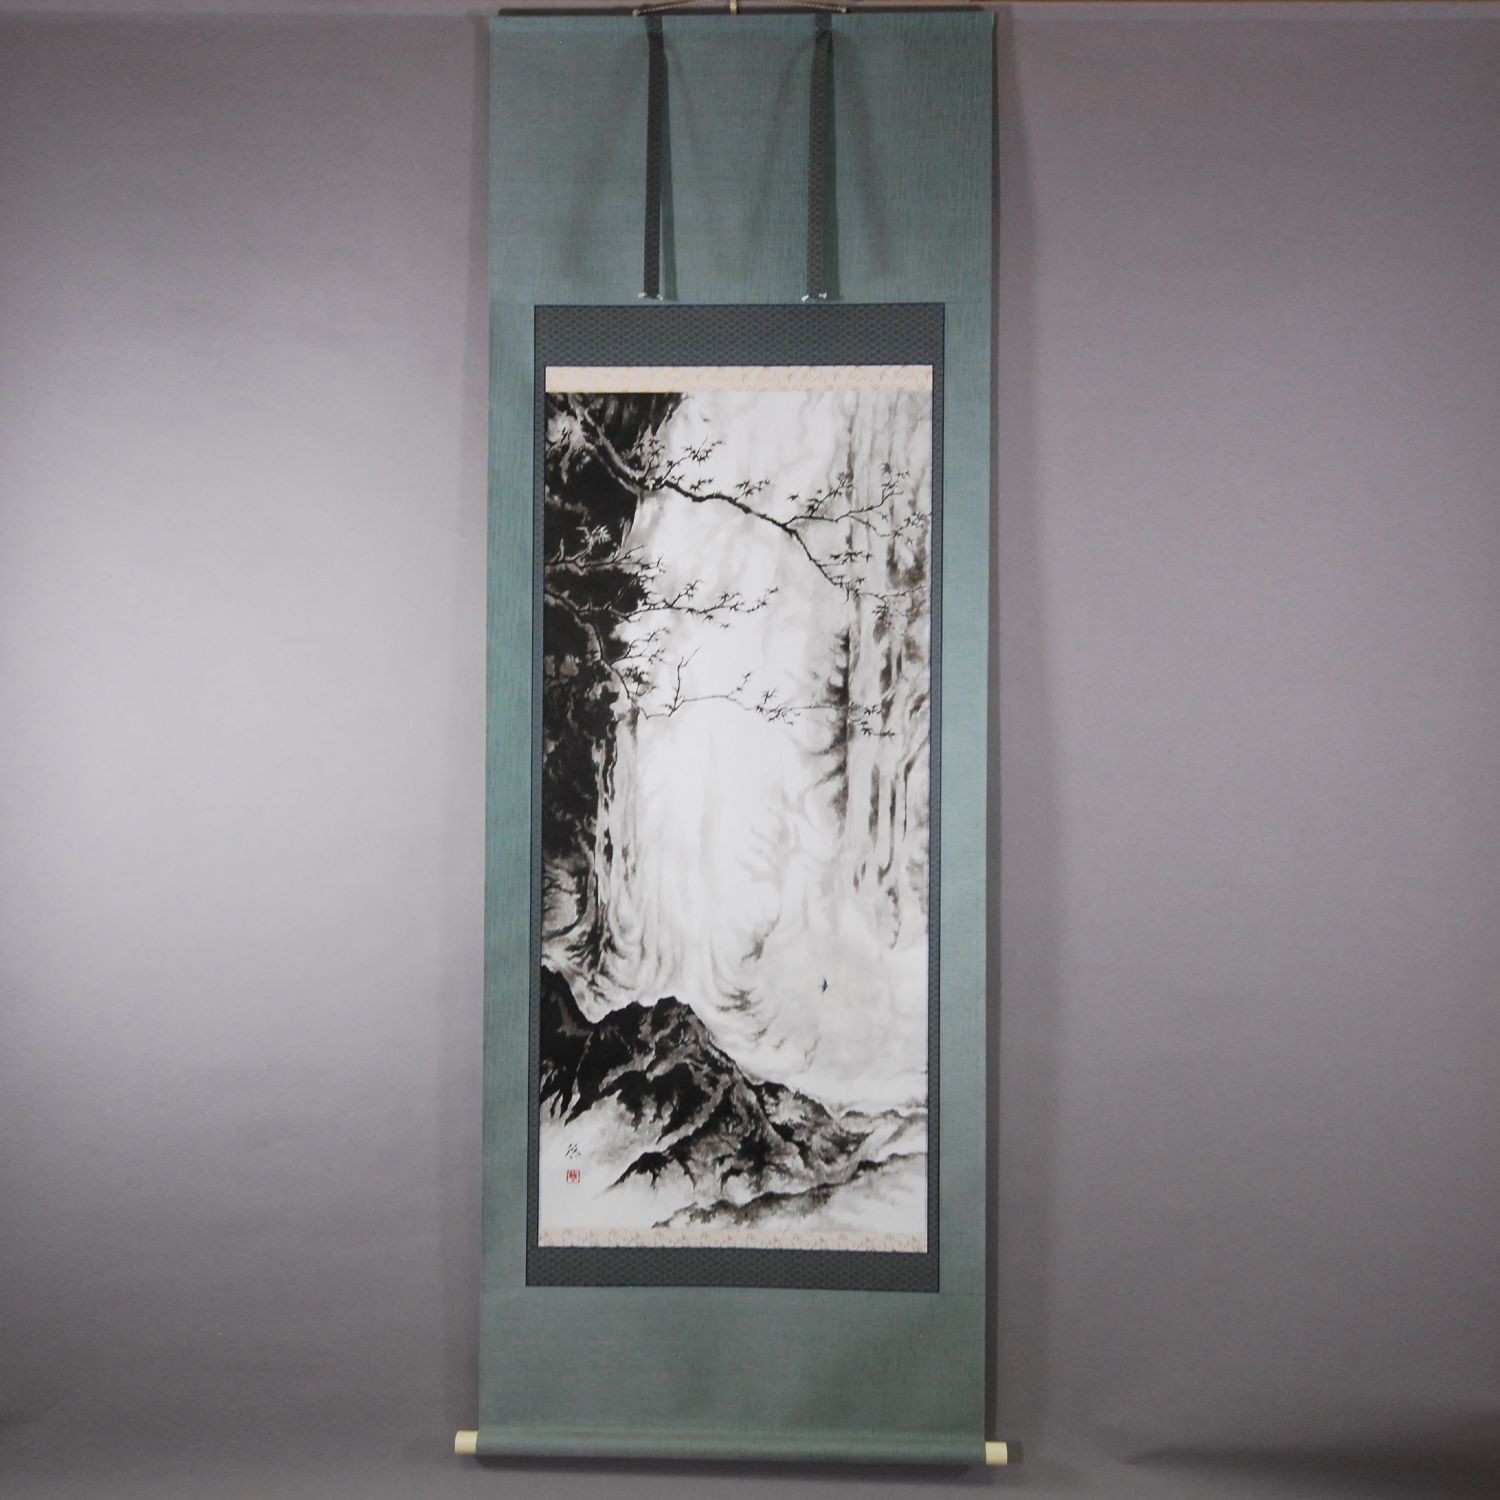 Japanese art for a wall gallery The kakejiku is a Japanese hanging